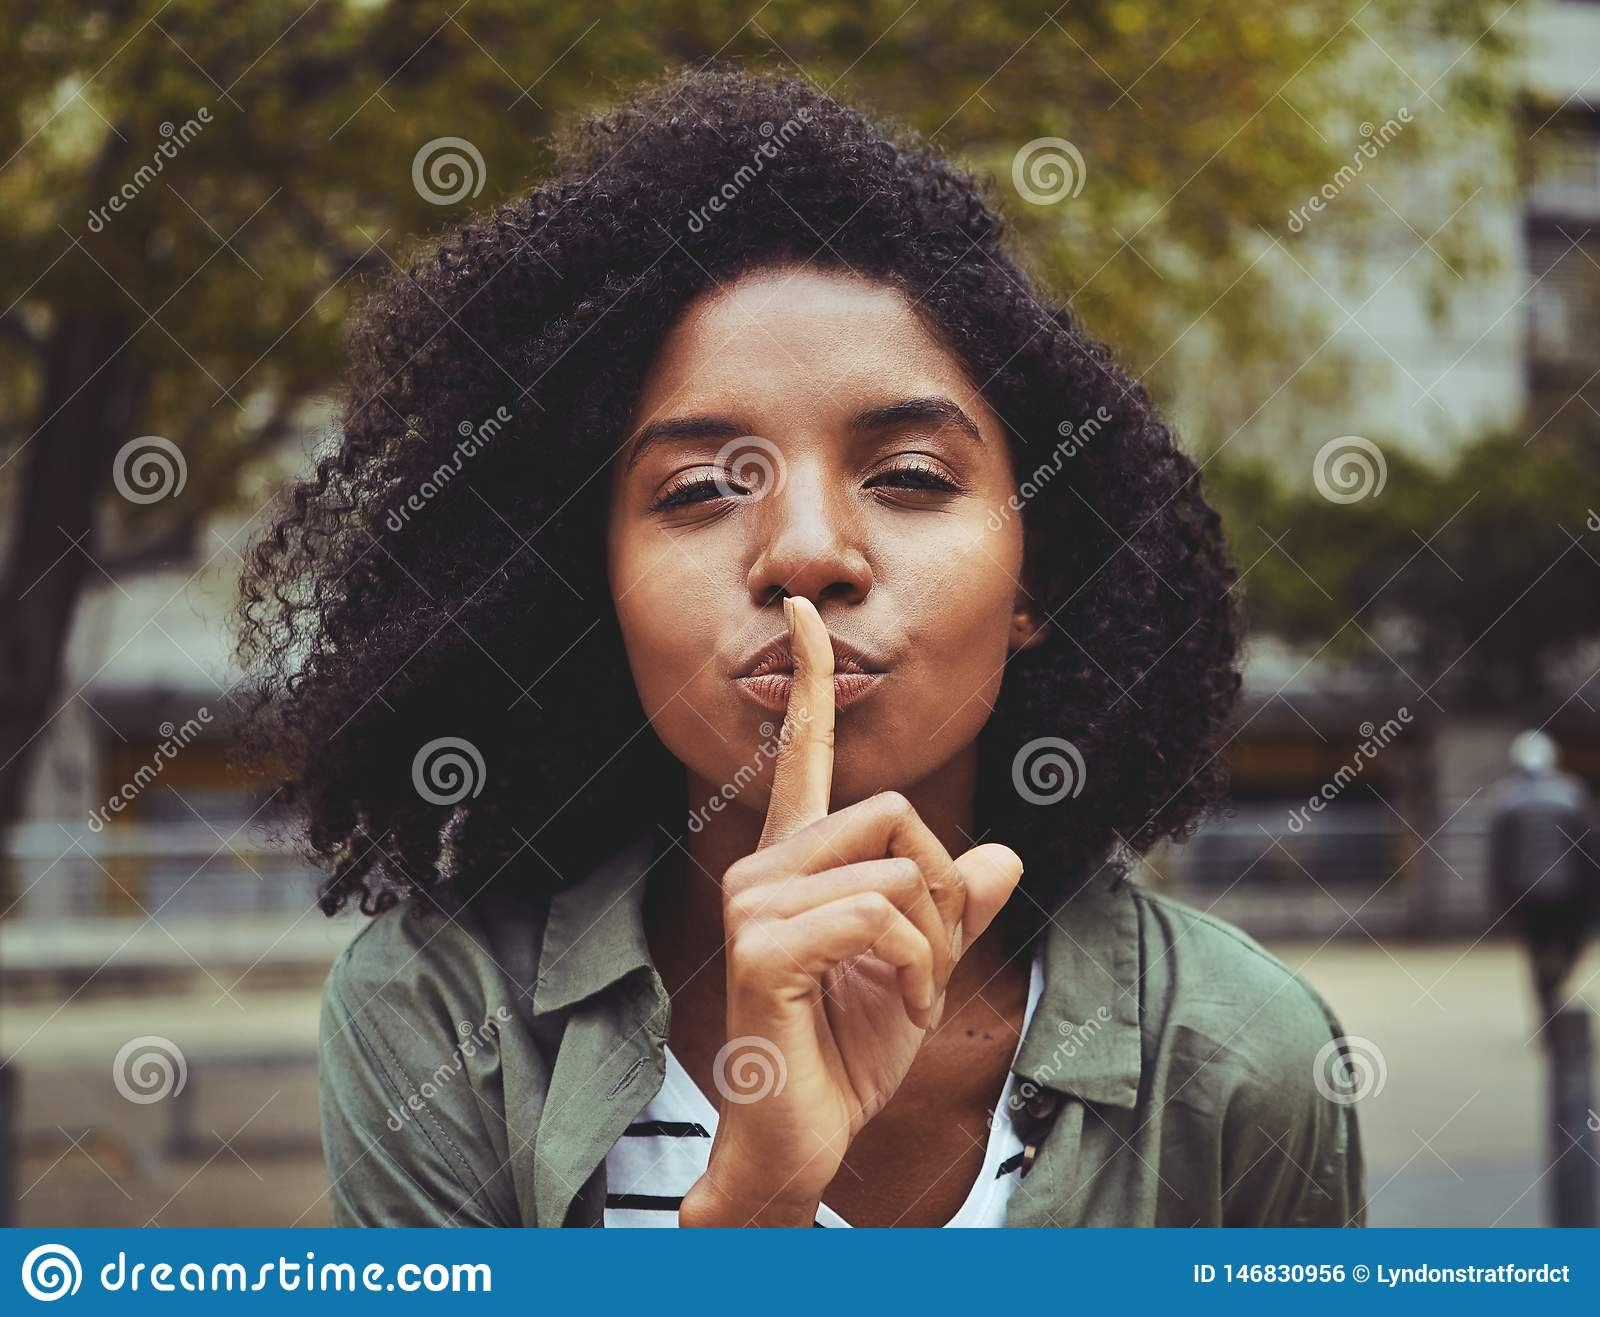 A young woman gesturing silence sign